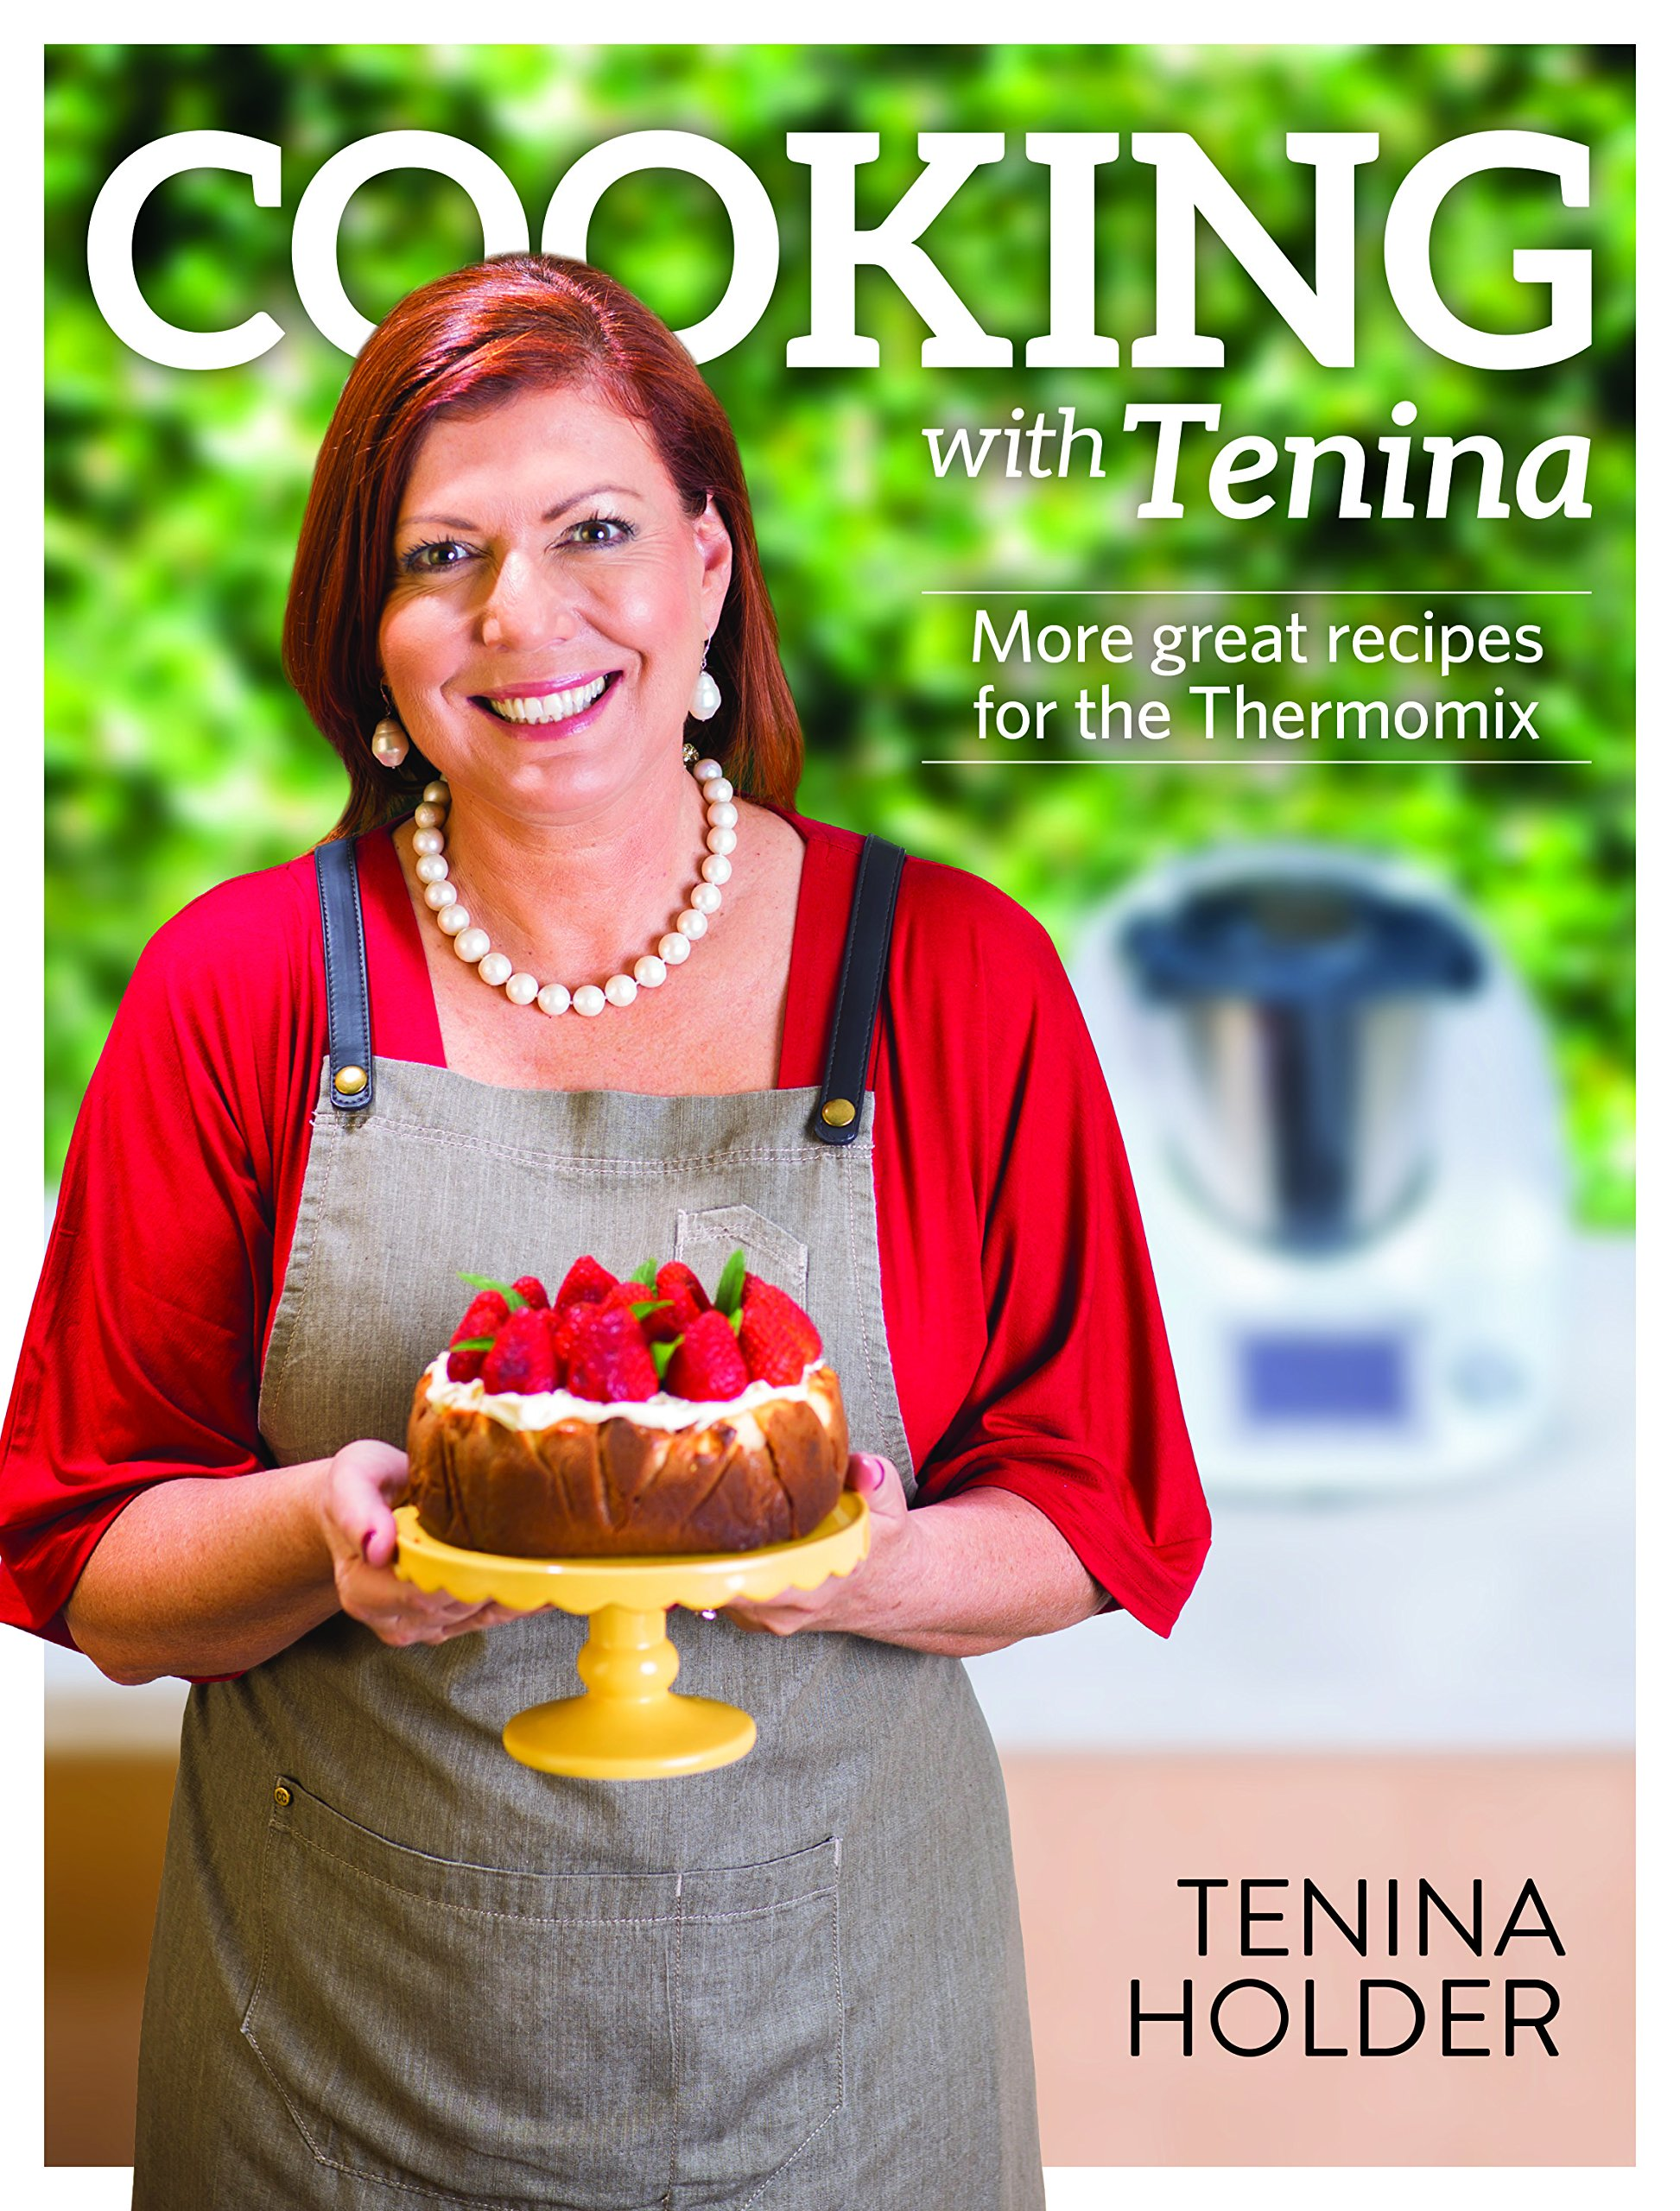 Cooking with tenina more great recipes for the thermomix tenina cooking with tenina more great recipes for the thermomix tenina holder 9780992363147 amazon books fandeluxe Images